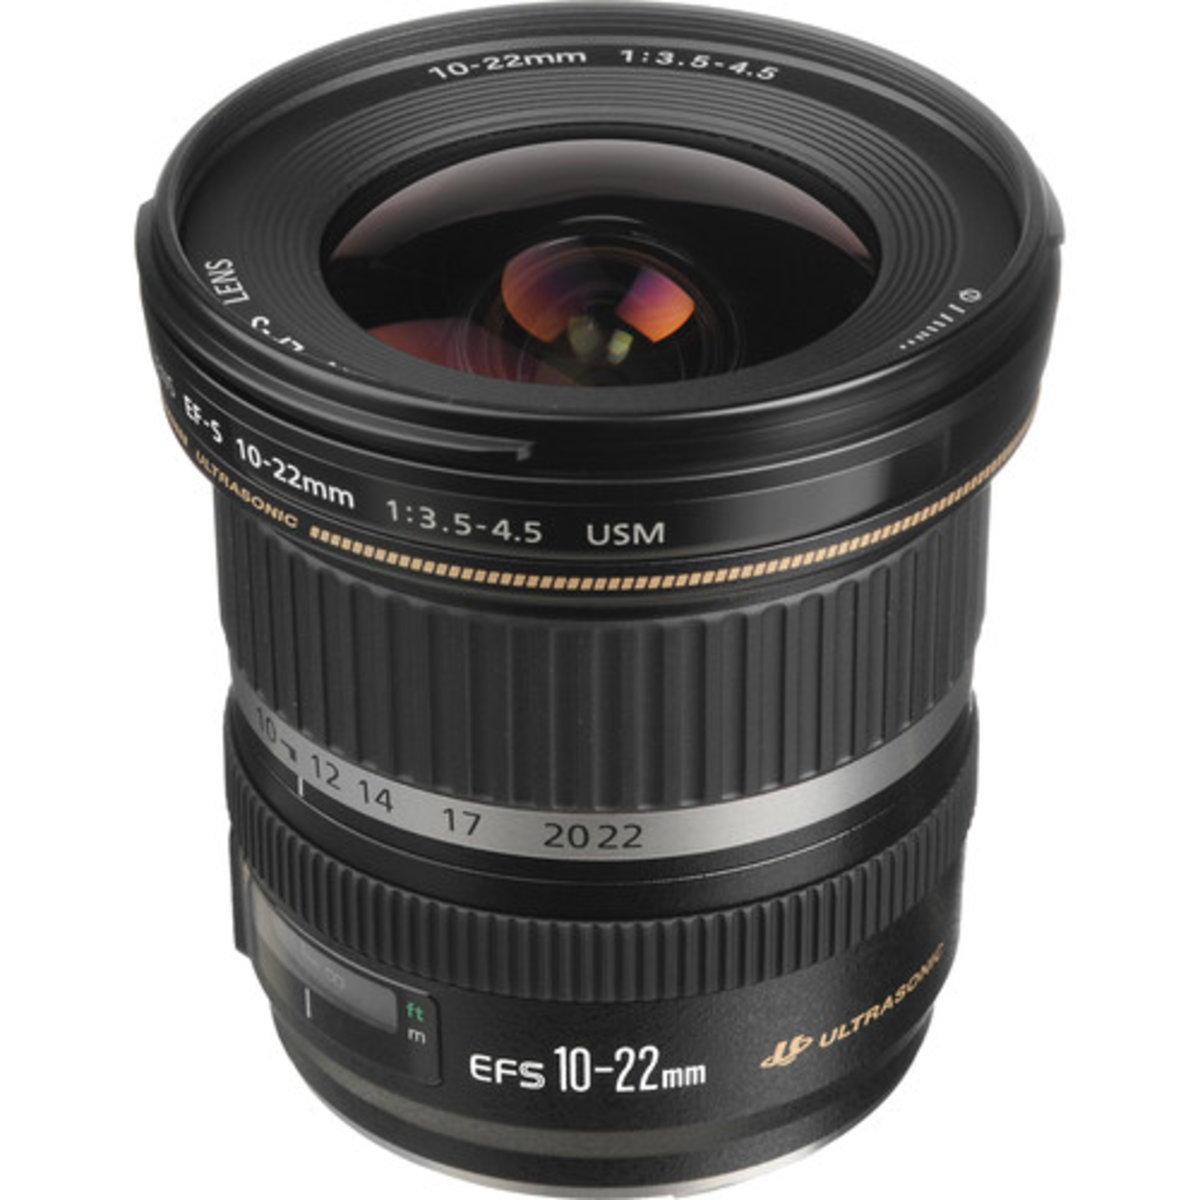 Canon EF-S 10-22mm f/3.5-4.5 USM Lens (Parallel imported)